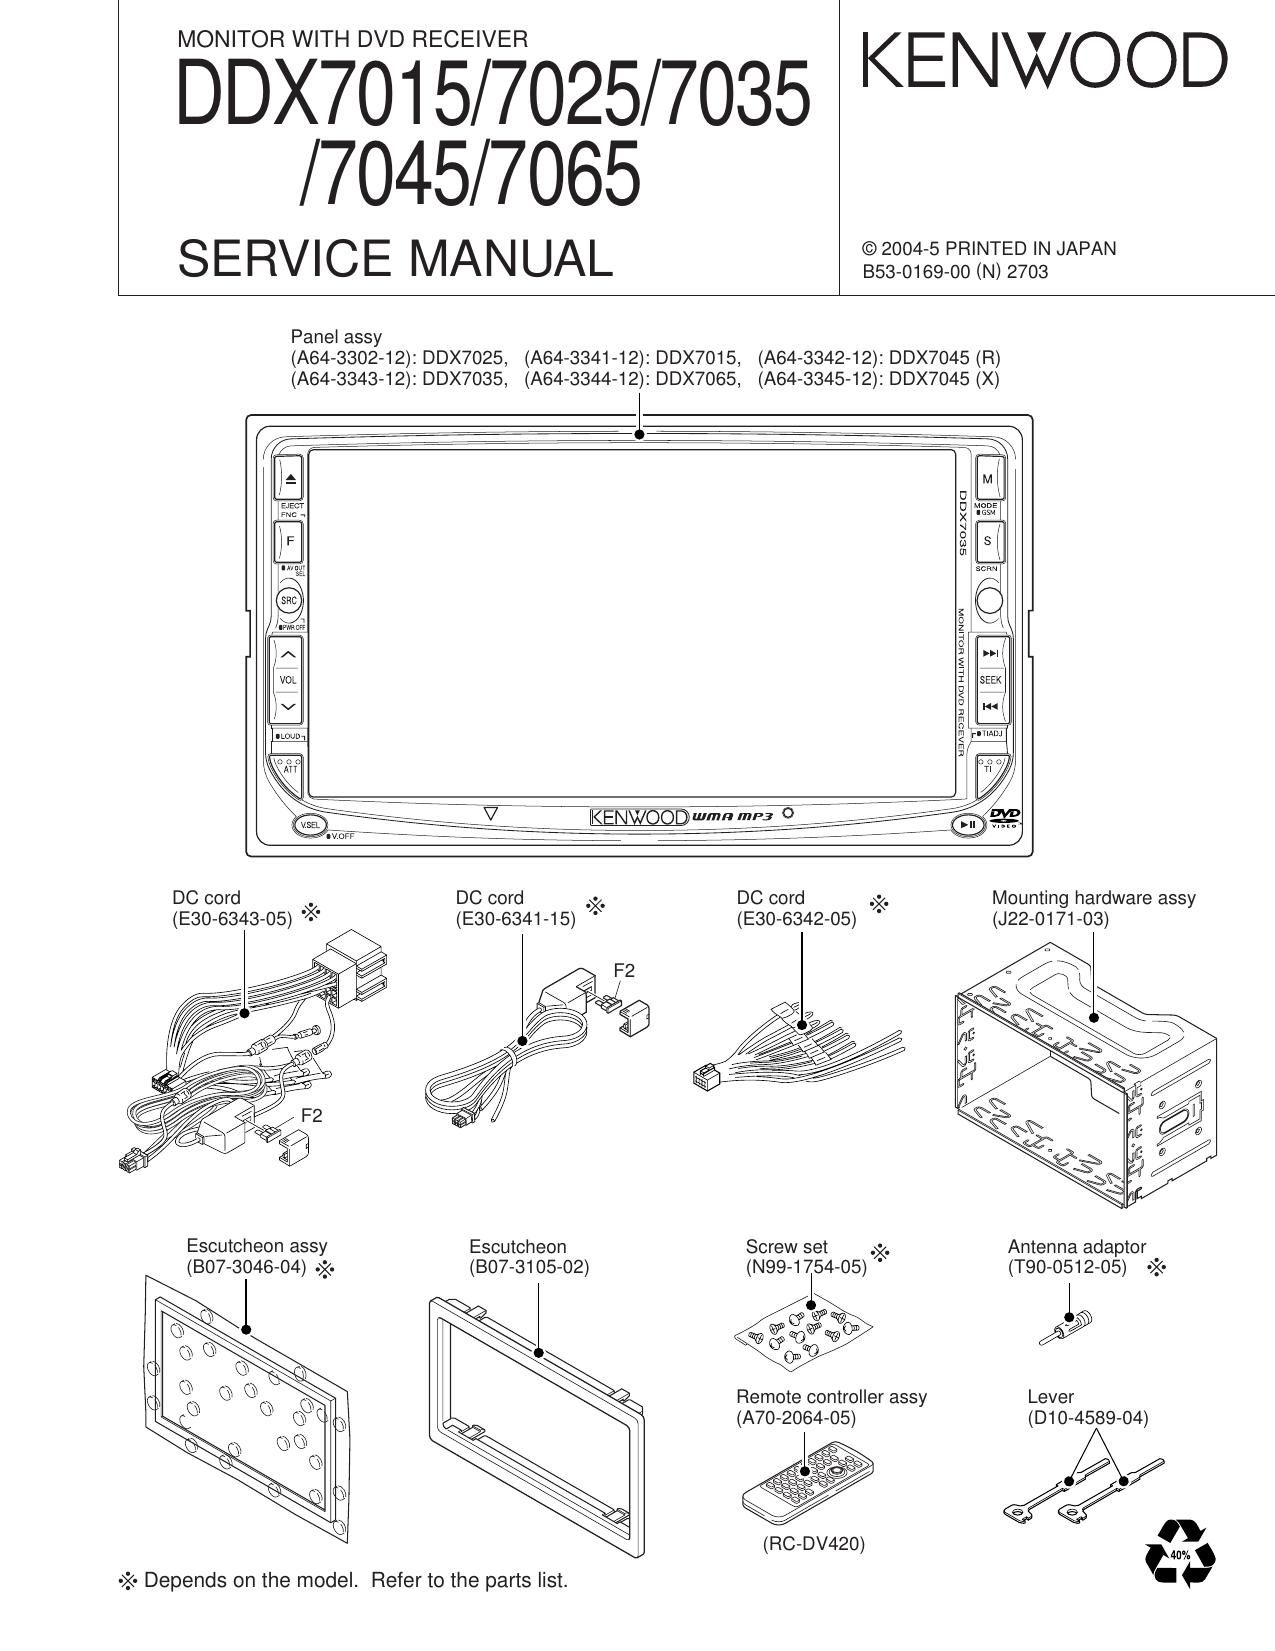 kenwood ddx 7035 service manual rh audioservicemanuals com Kenwood DDX 917 Kenwood DDX Models